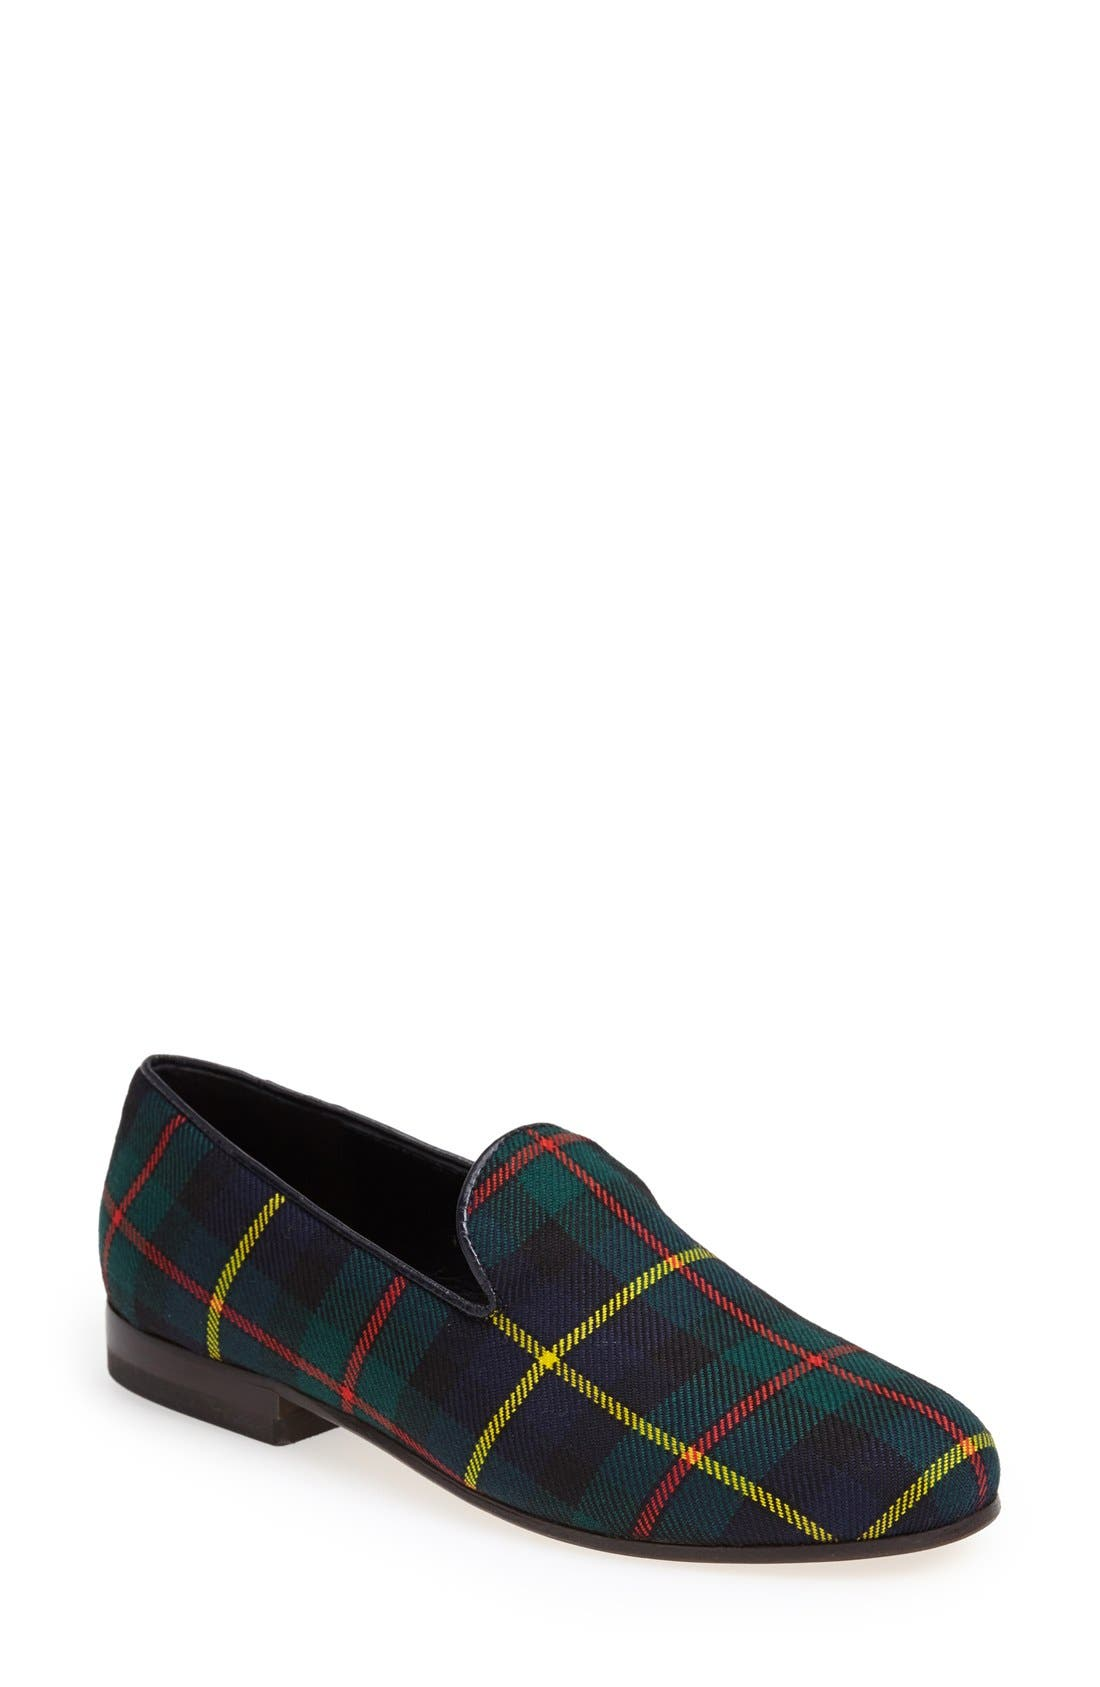 Main Image - CB Made in Italy Plaid Smoking Loafer (Women)